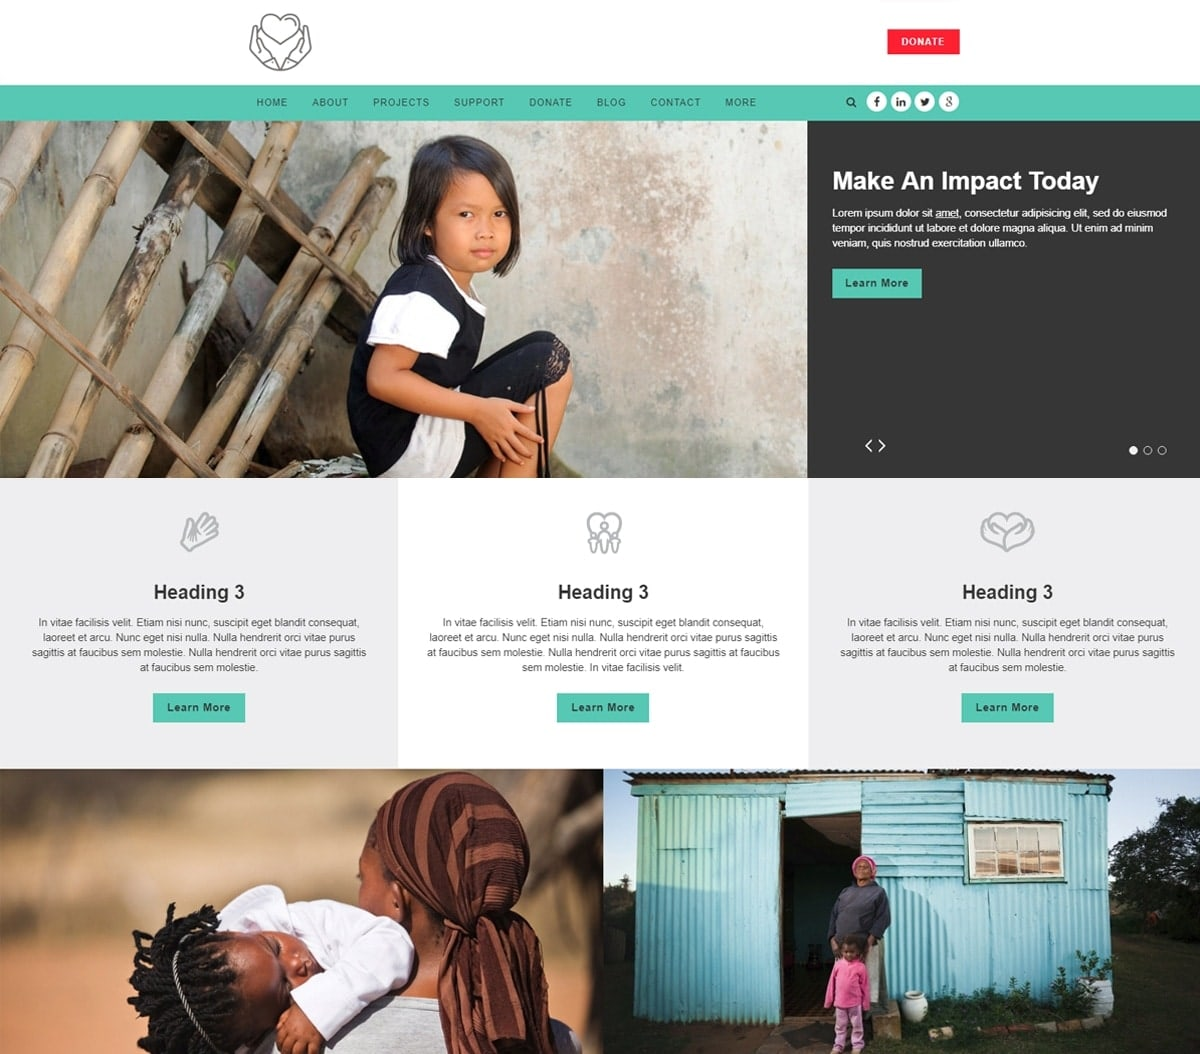 After overcoming great obstacles, some people find themselves wanting to help others have the same succe. Top 9 Nonprofit Website Templates For All Organizations